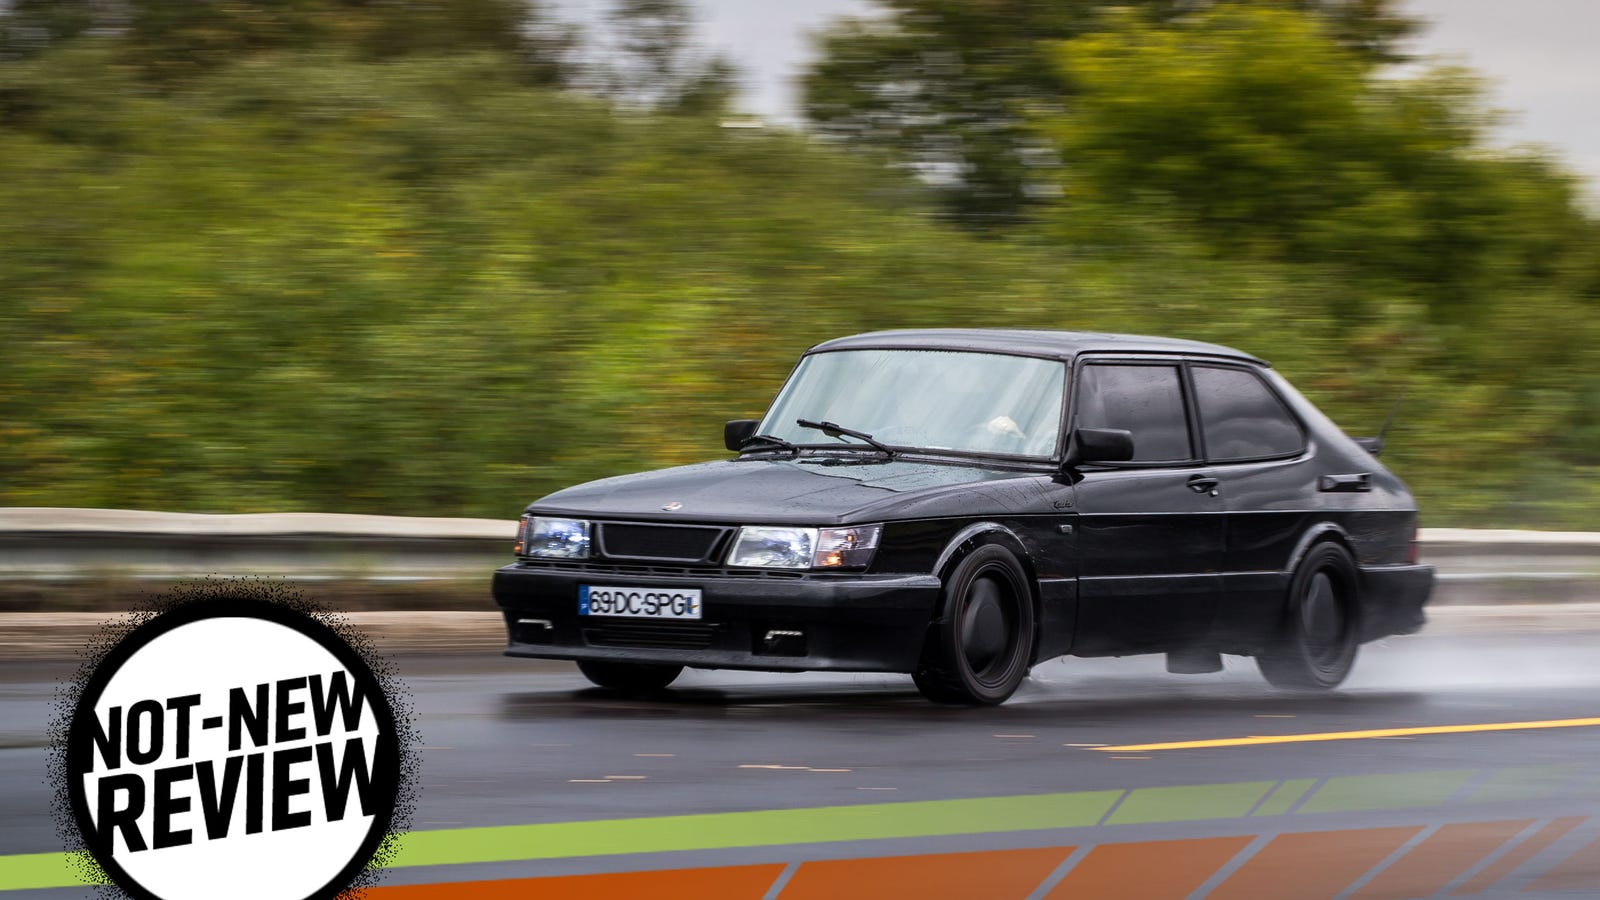 The Saab 900 Turbo Spg Was A Hot Hatch Way Before Hatchbacks 1989 Wiring Harness Were Cool